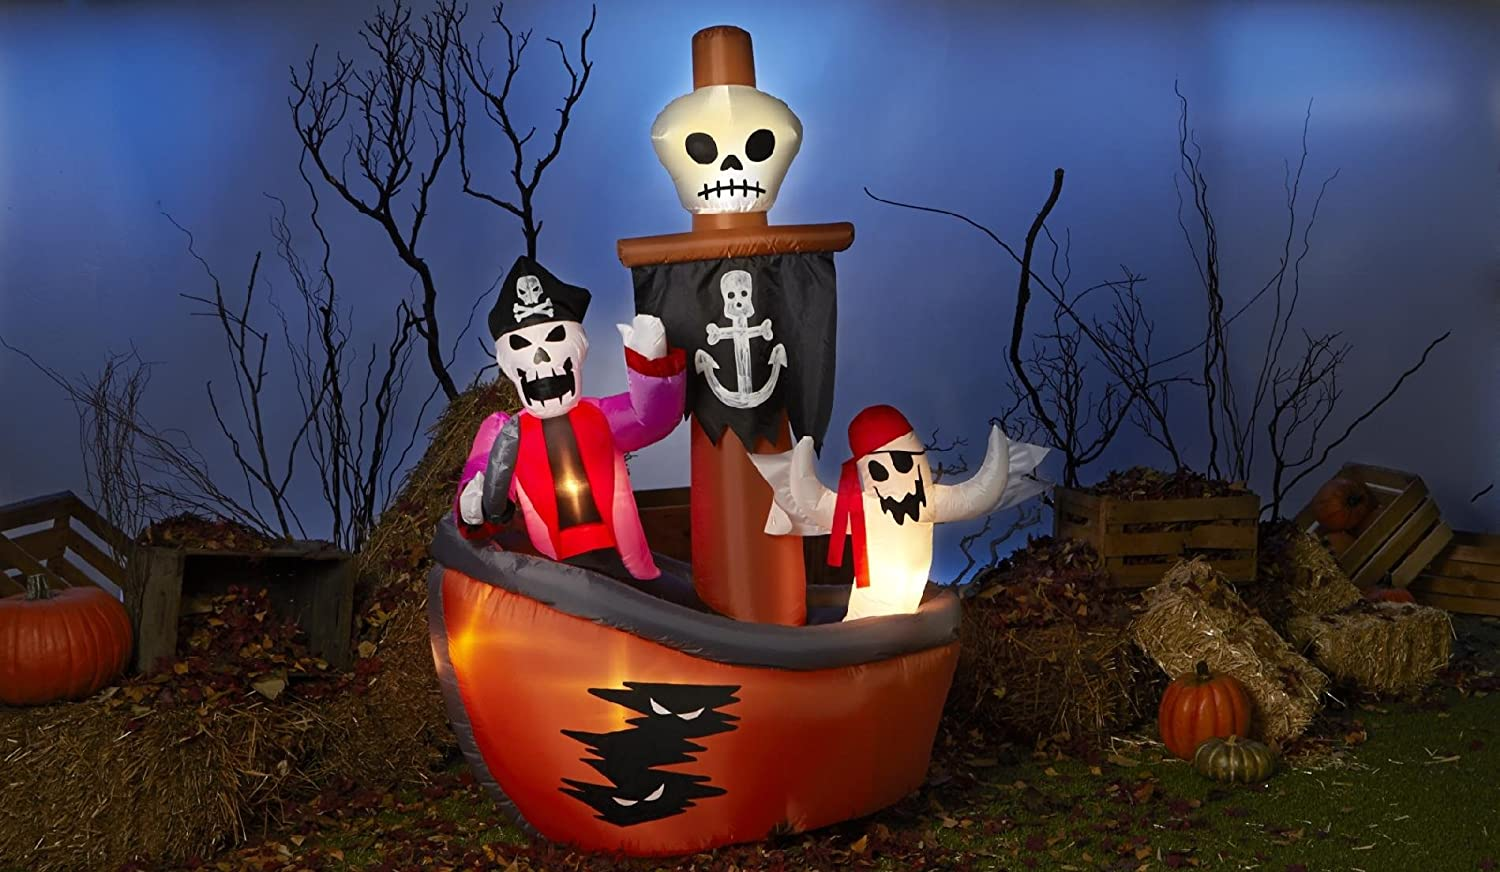 amazoncom totally ghoul airblown halloween decoration ghost pirate ship toys games